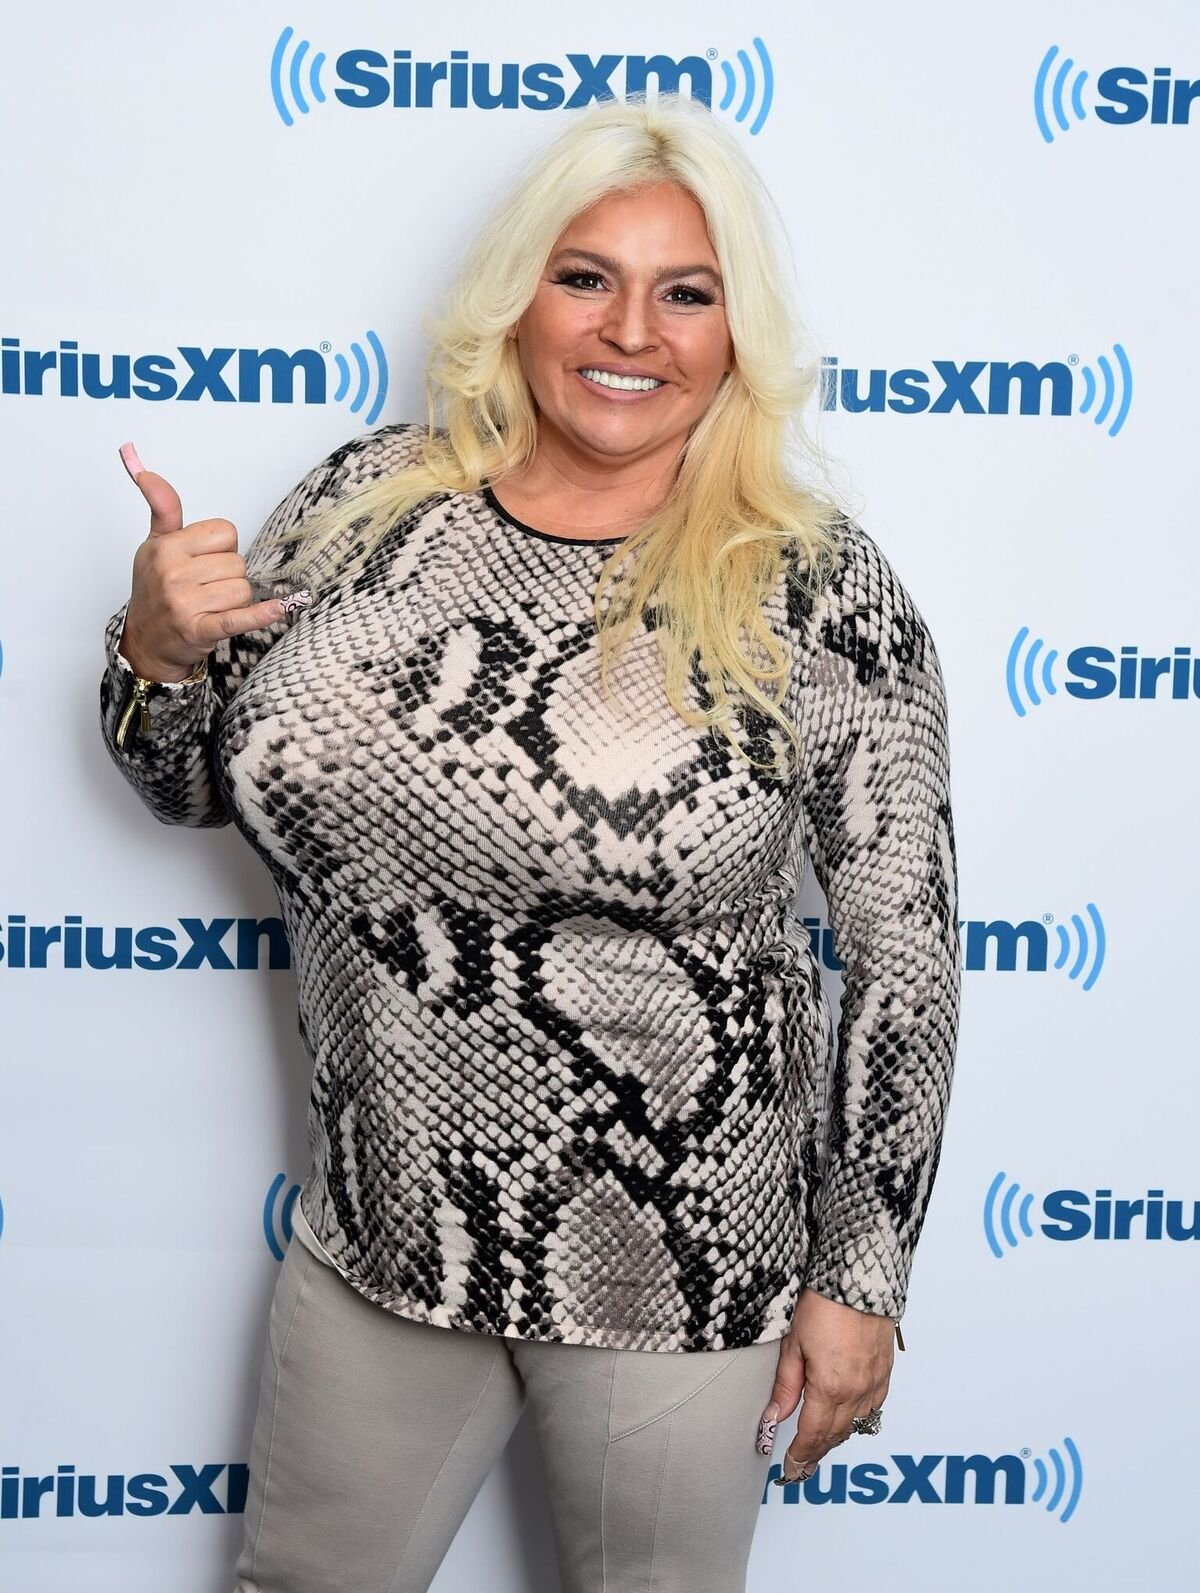 Beth Chapman visits the SiriusXM Studios on April 24, 2015 in New York City | Photo: Getty Images